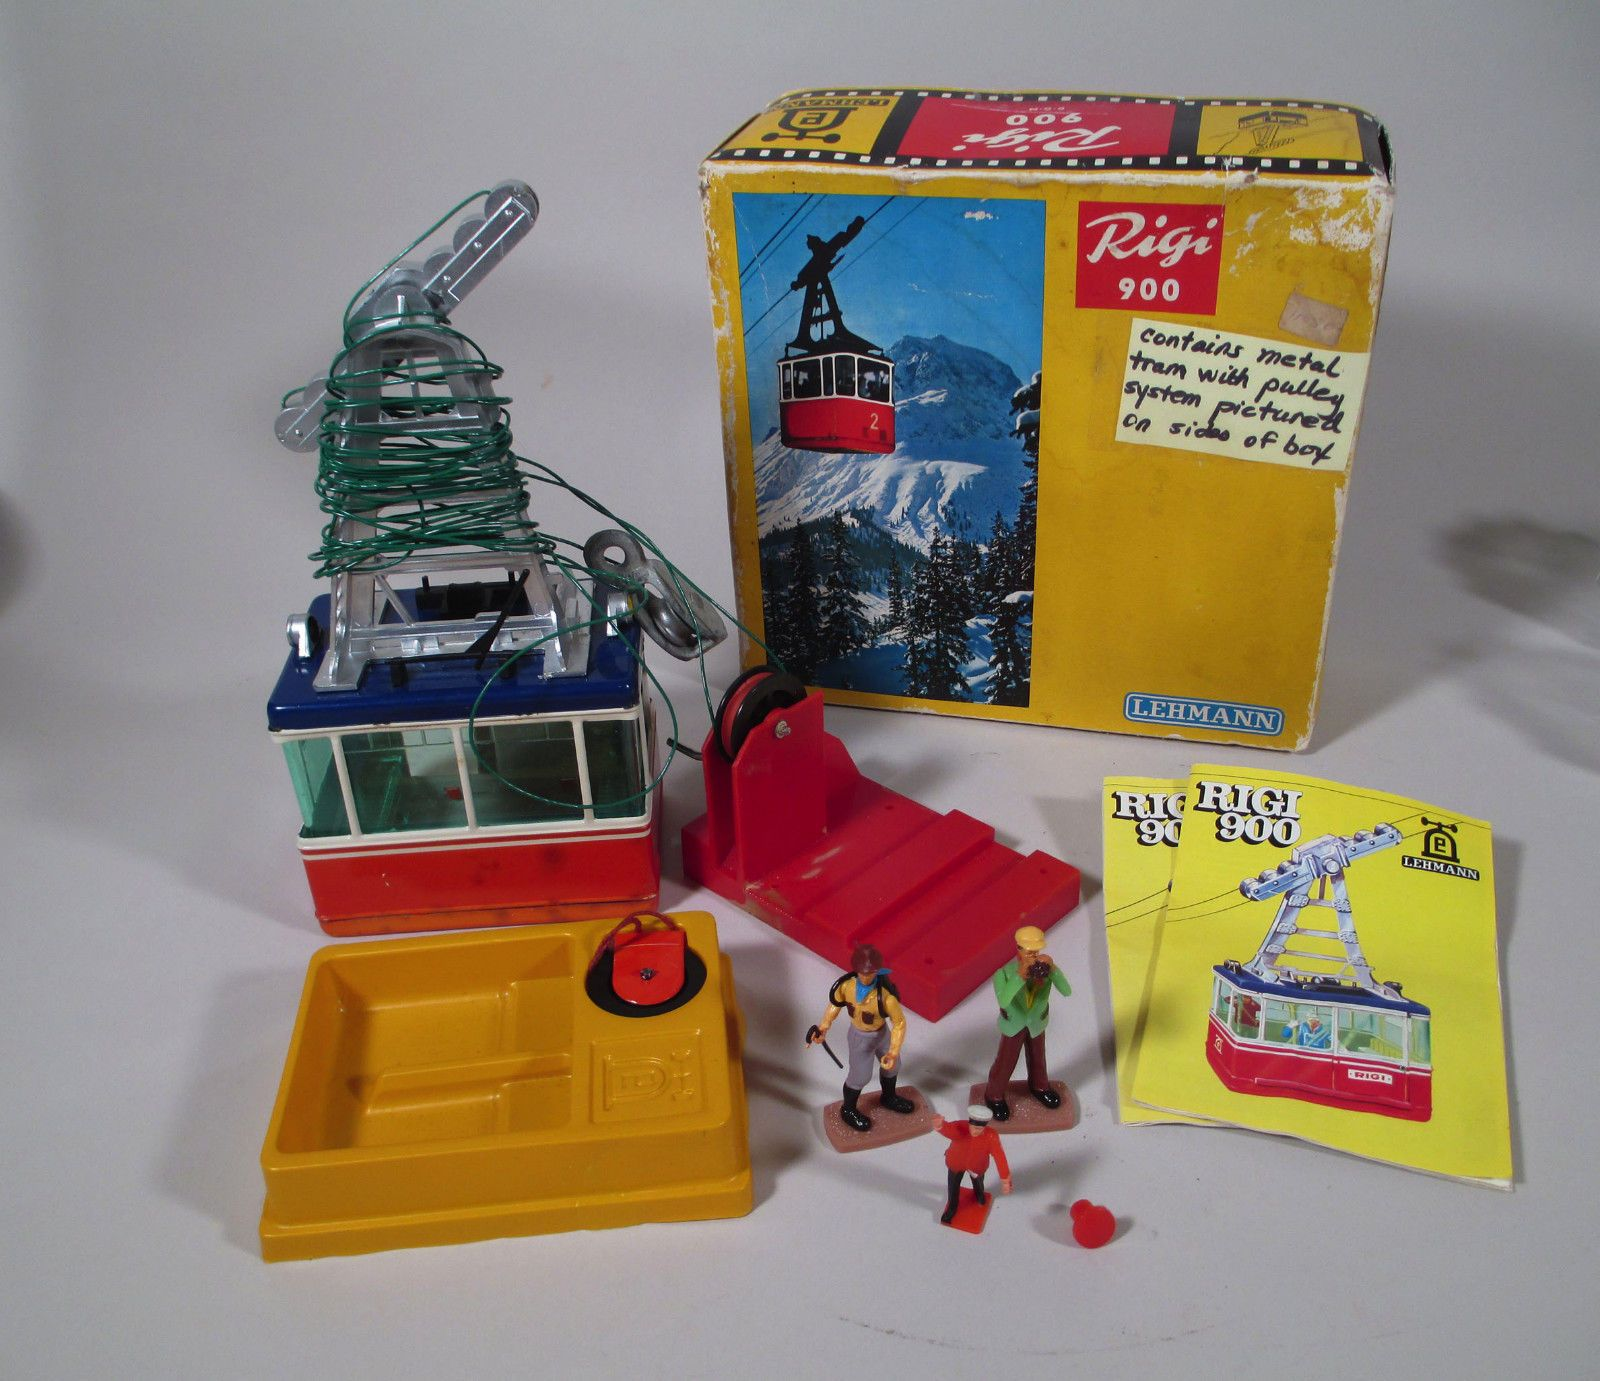 Vintage Lehmann Rigi 900 Gondola Ski Lift Cable Car Toy